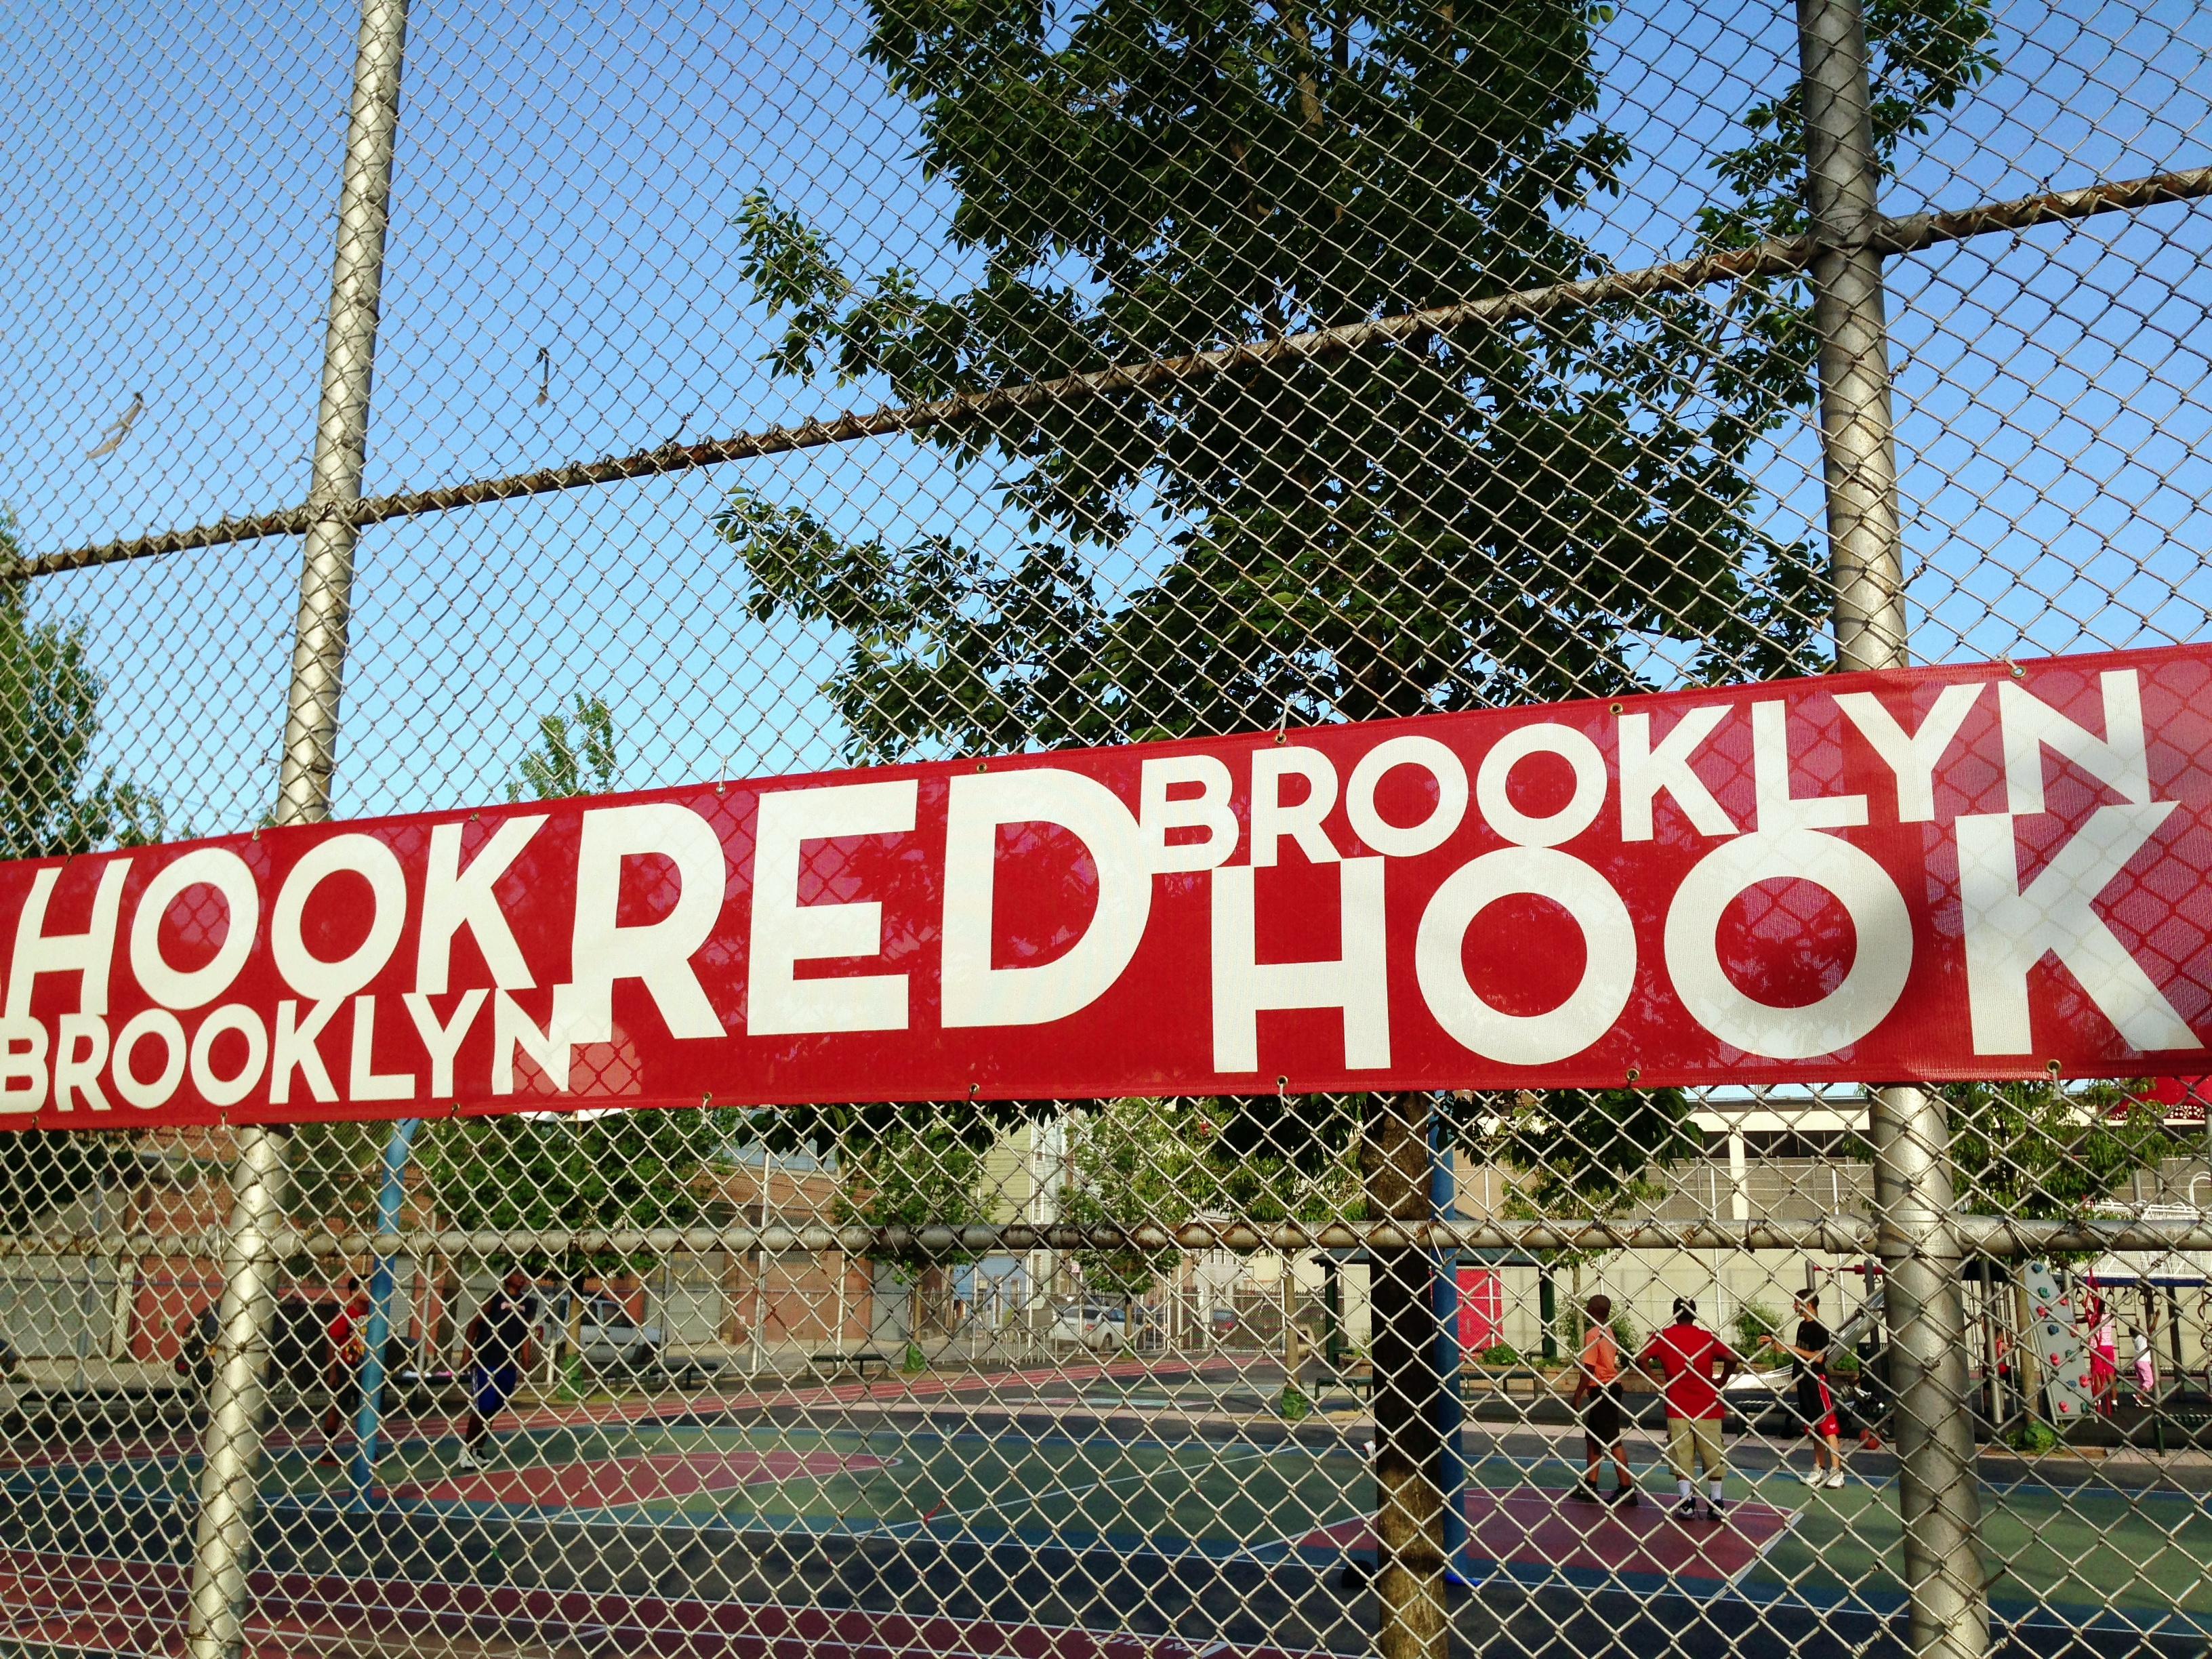 sign red hook brooklyn